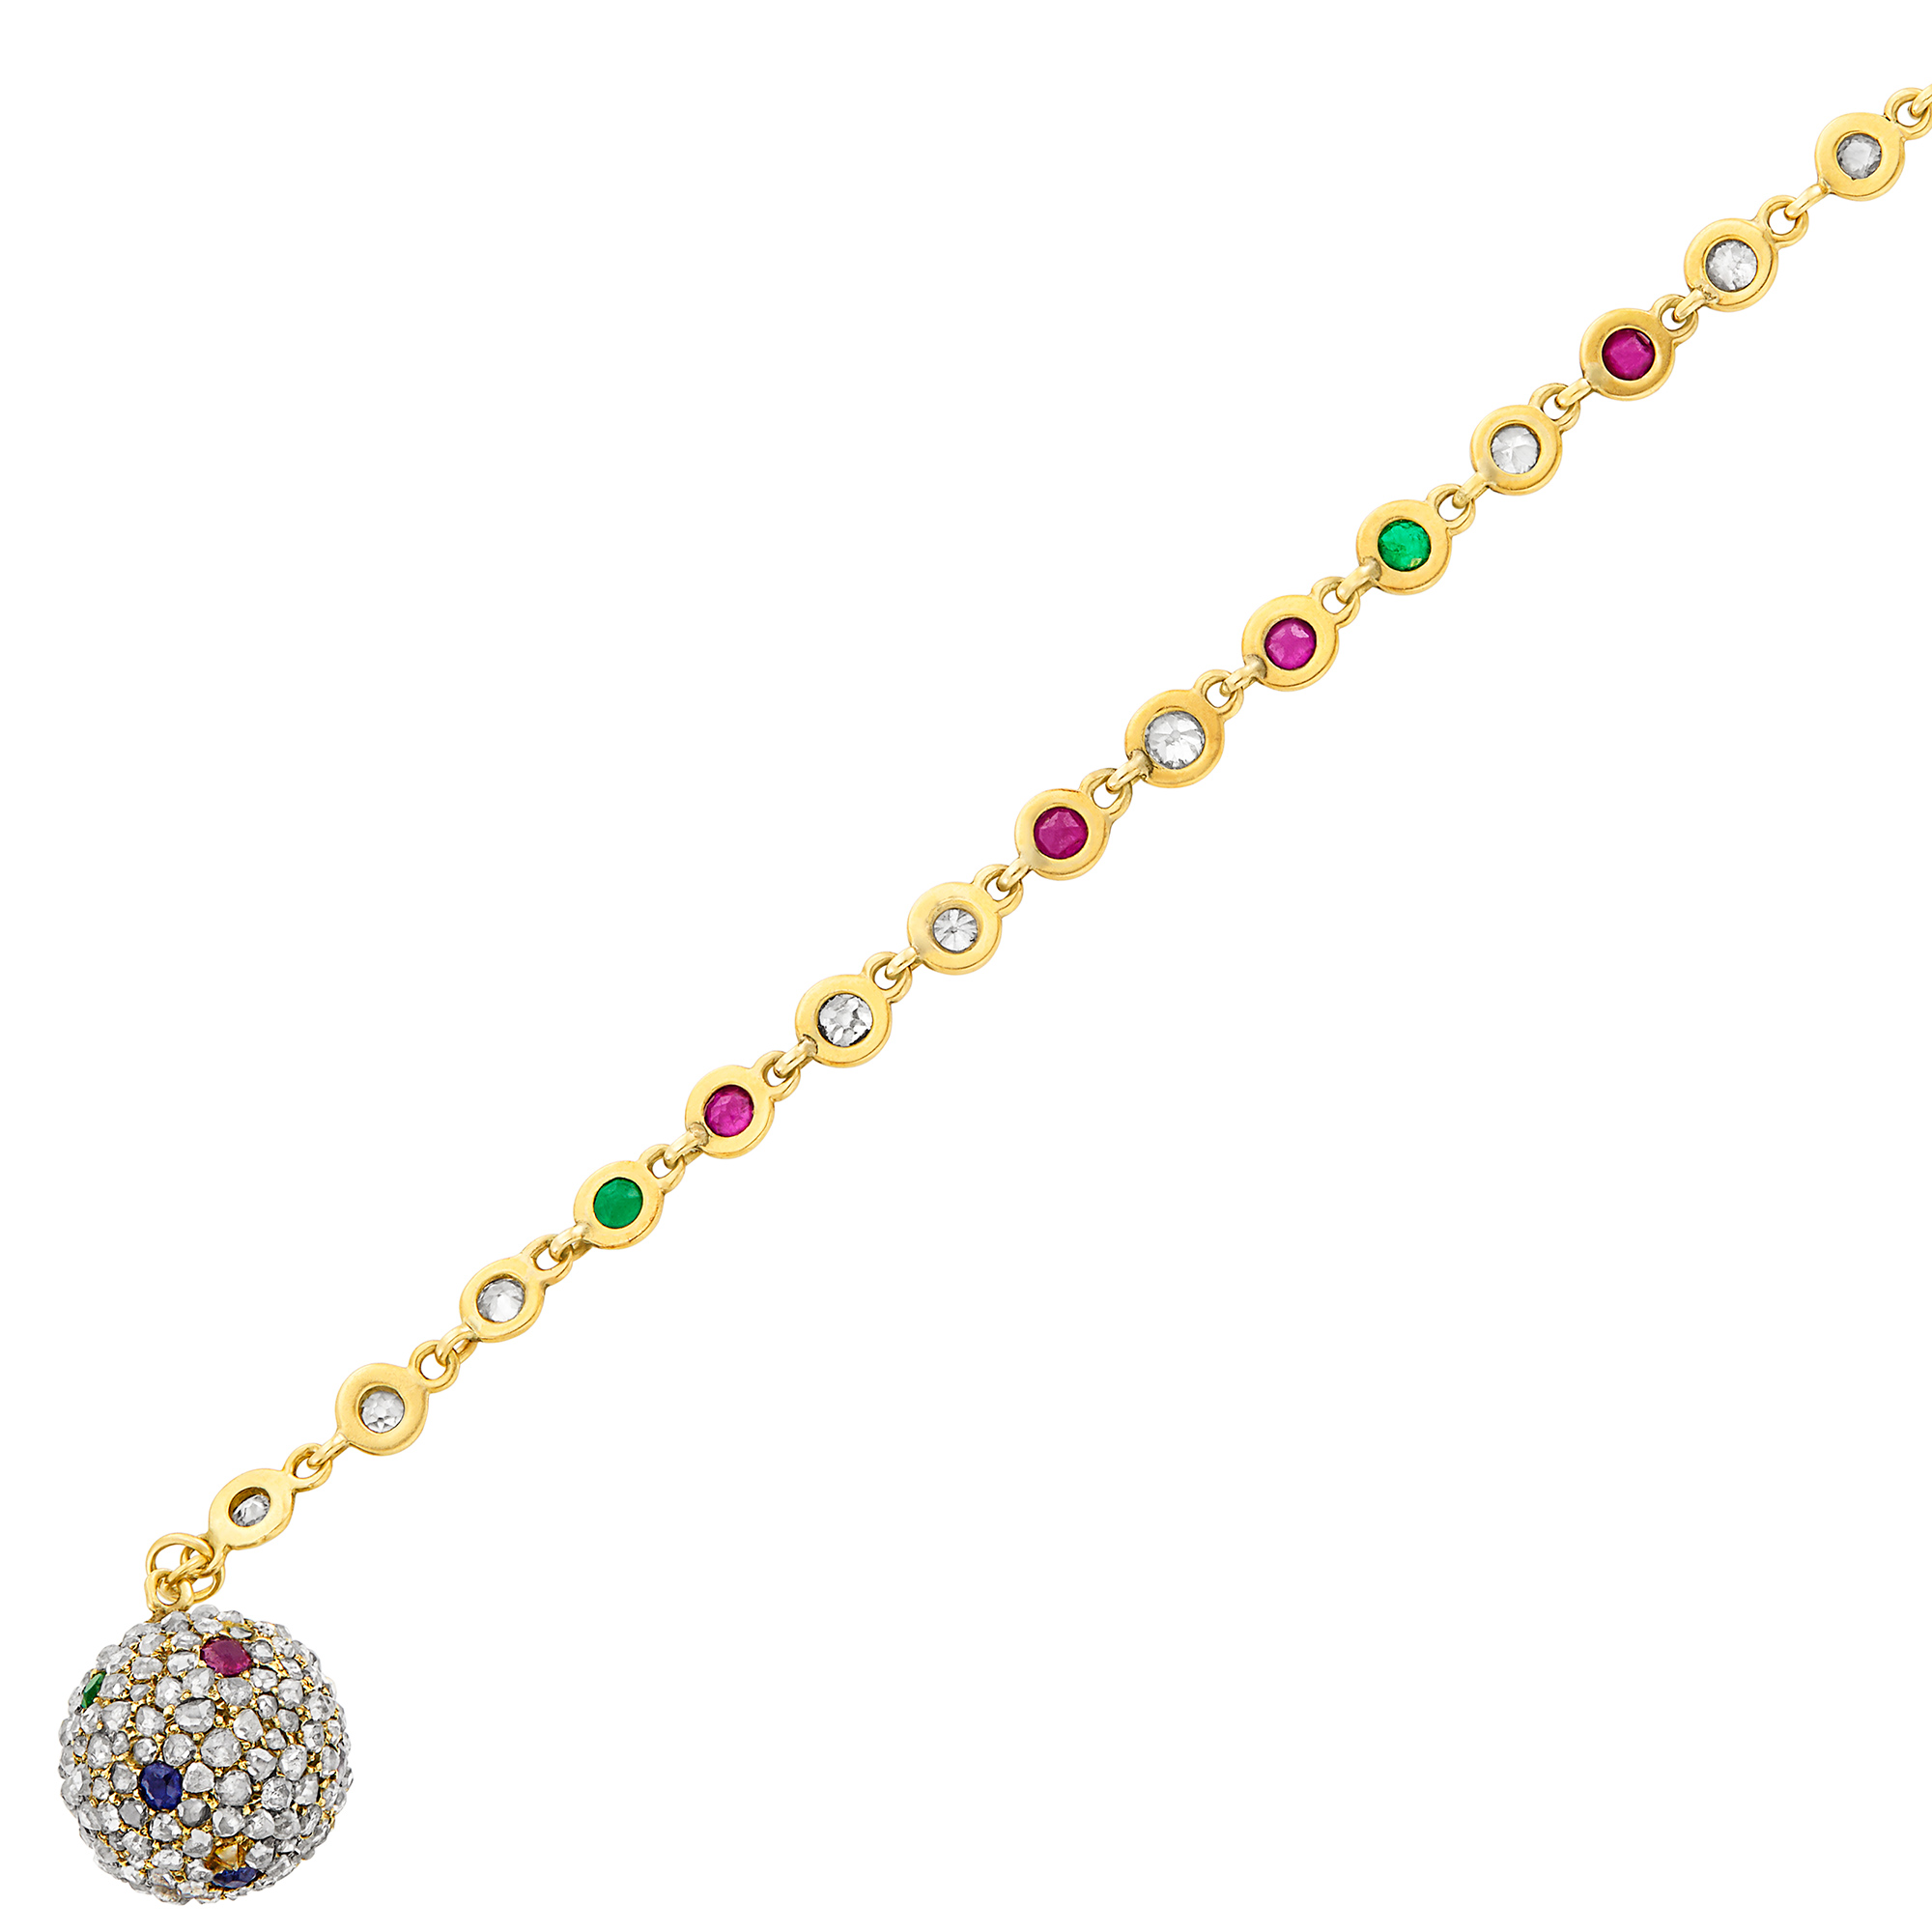 Lot image - Gold, Diamond and Gem-Set Bracelet with Antique Ball Charm